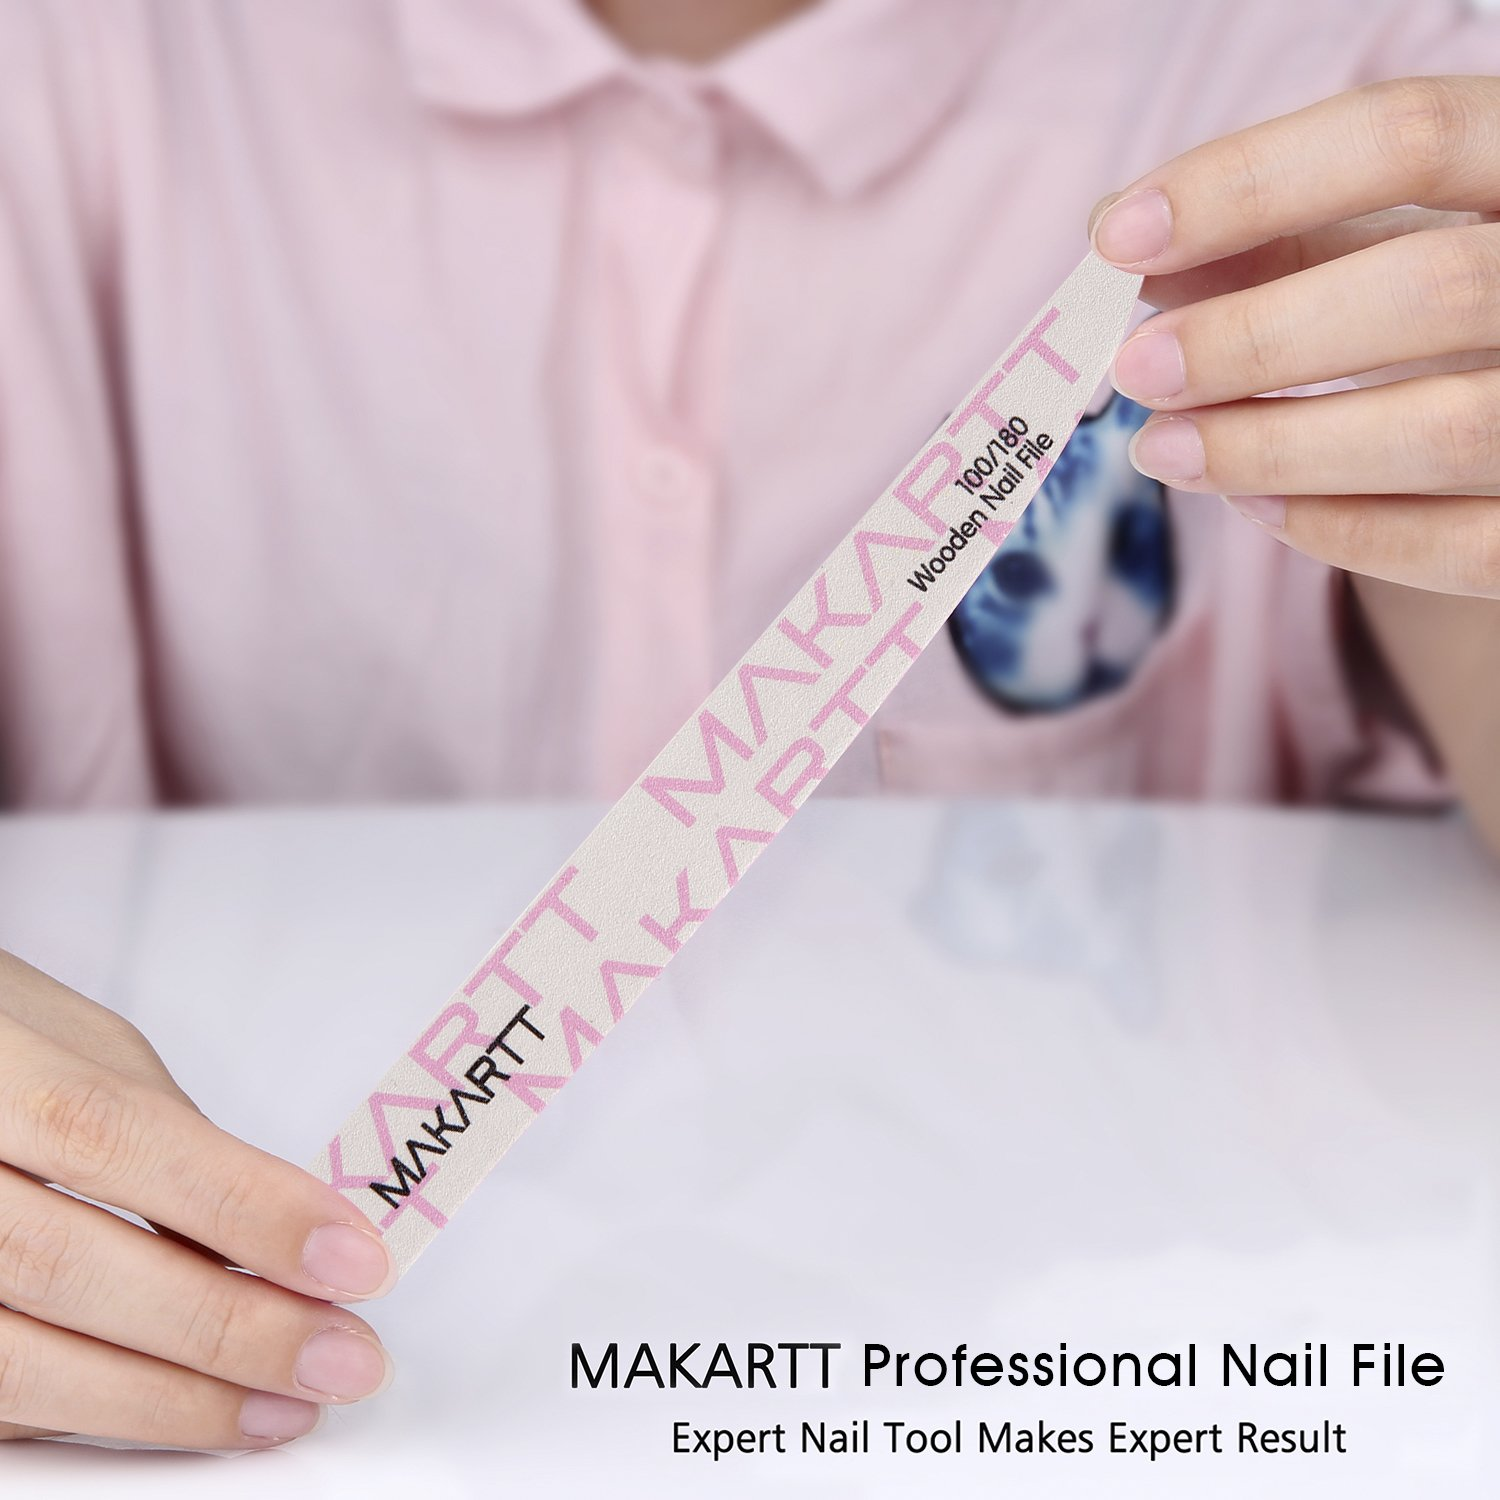 Amazon.com : MAKARTT Professional Nail File 100 180 240 Grit Wooden ...